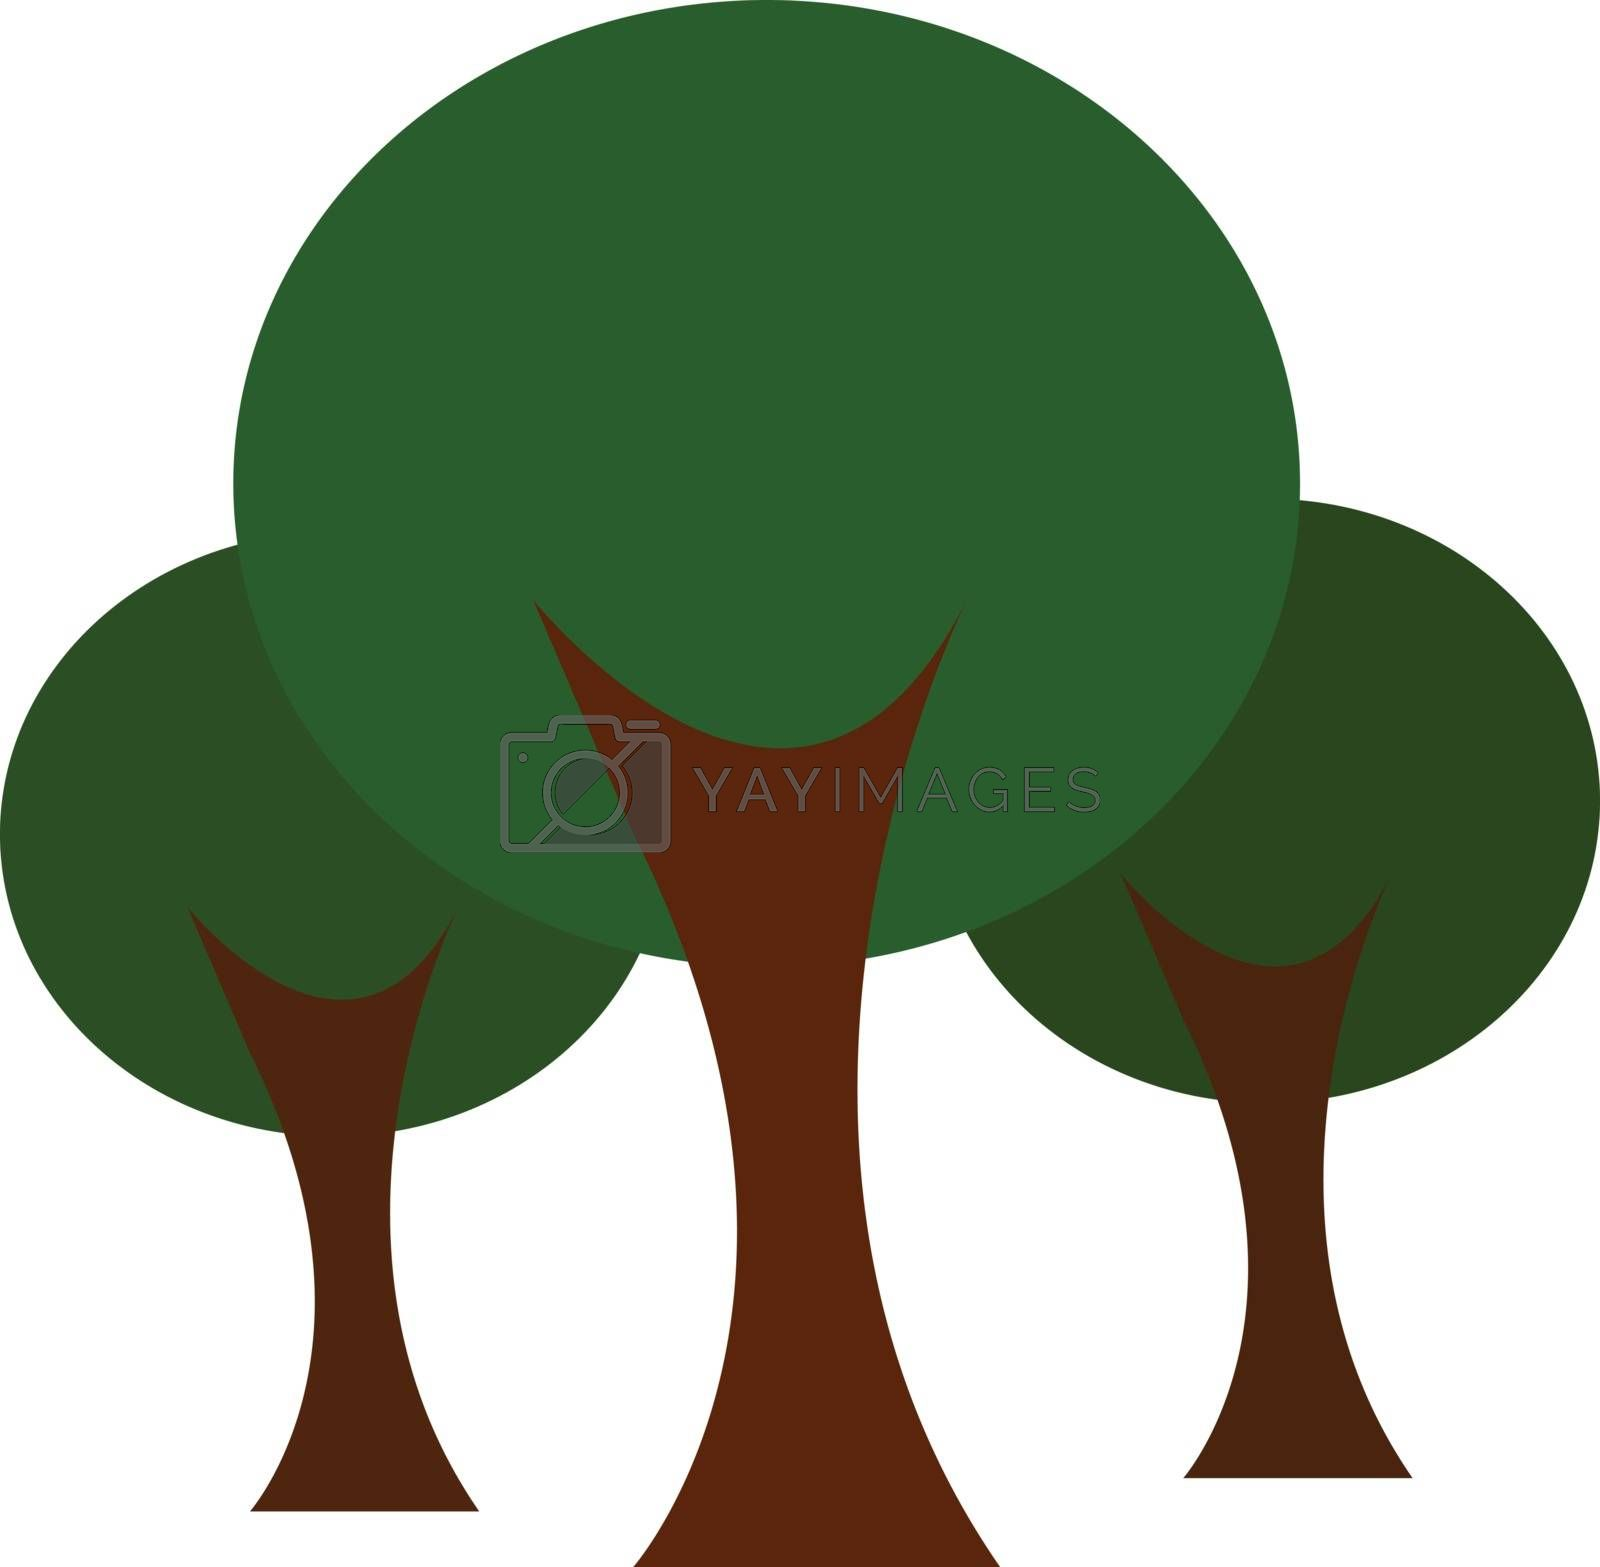 Clipart of forest with long standing trees vector color drawing or illustration